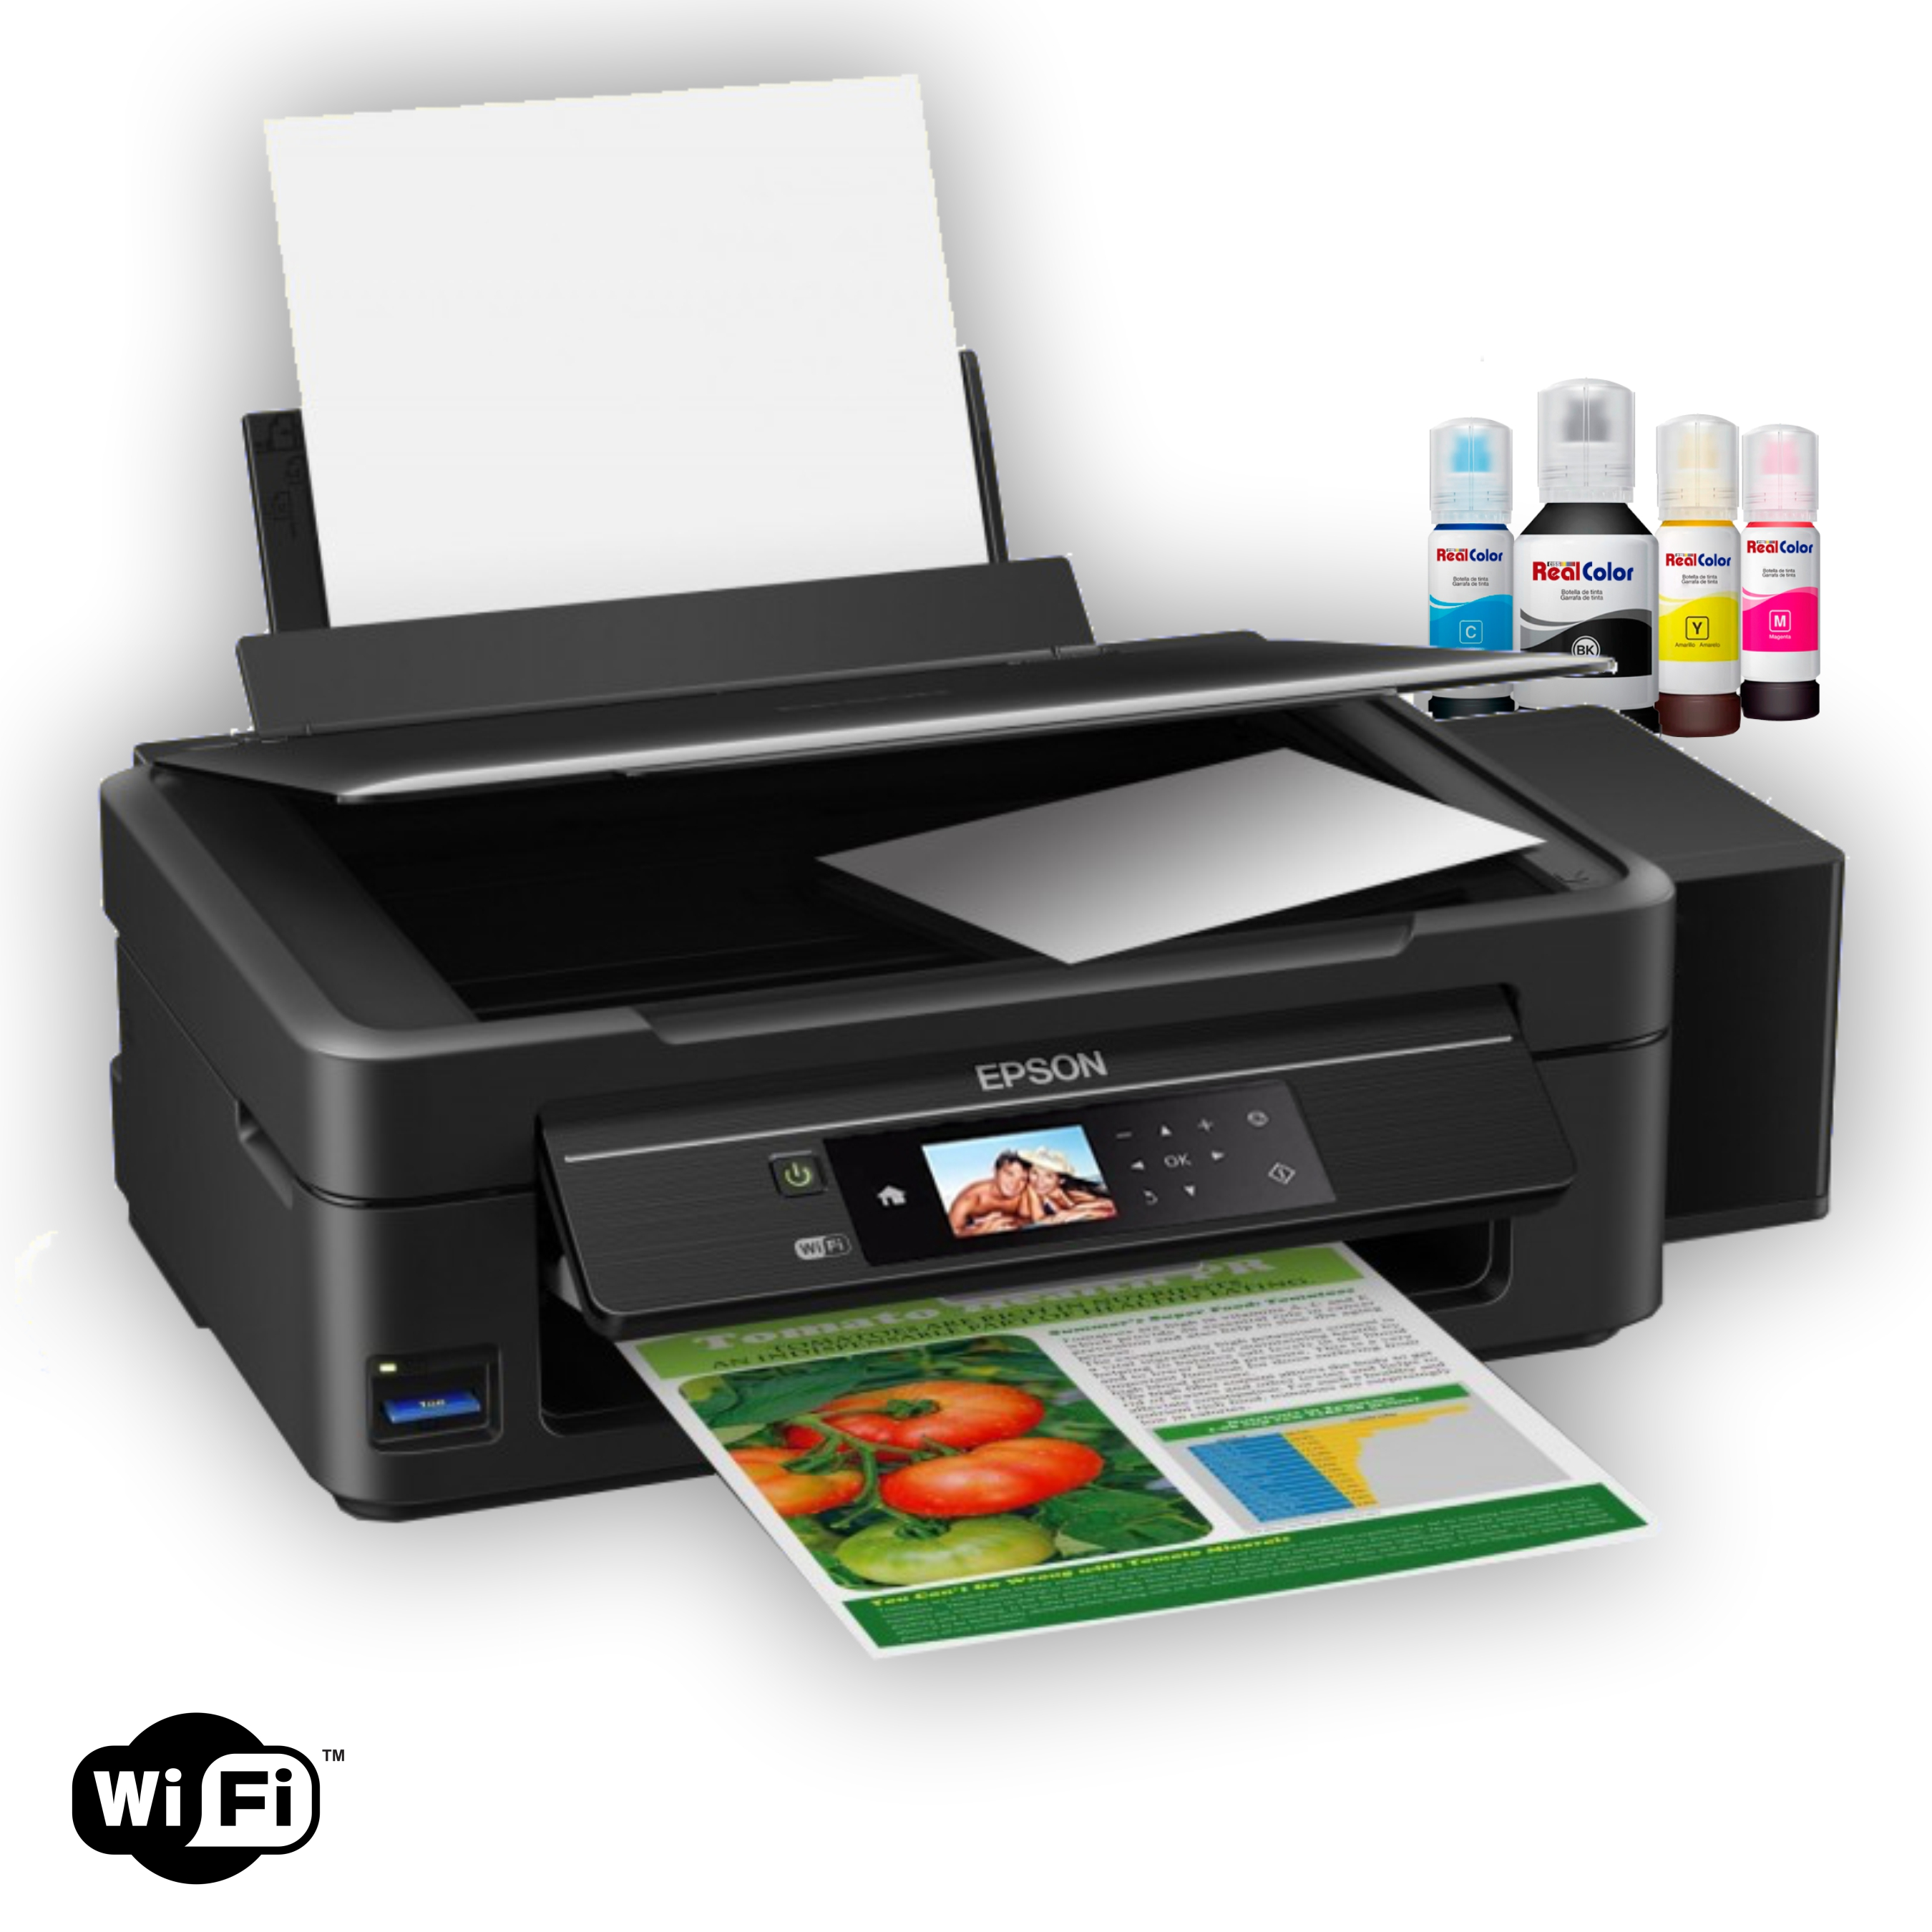 PRINTER CANON MX-472 + SISTEMA TINTA REAL COLOR